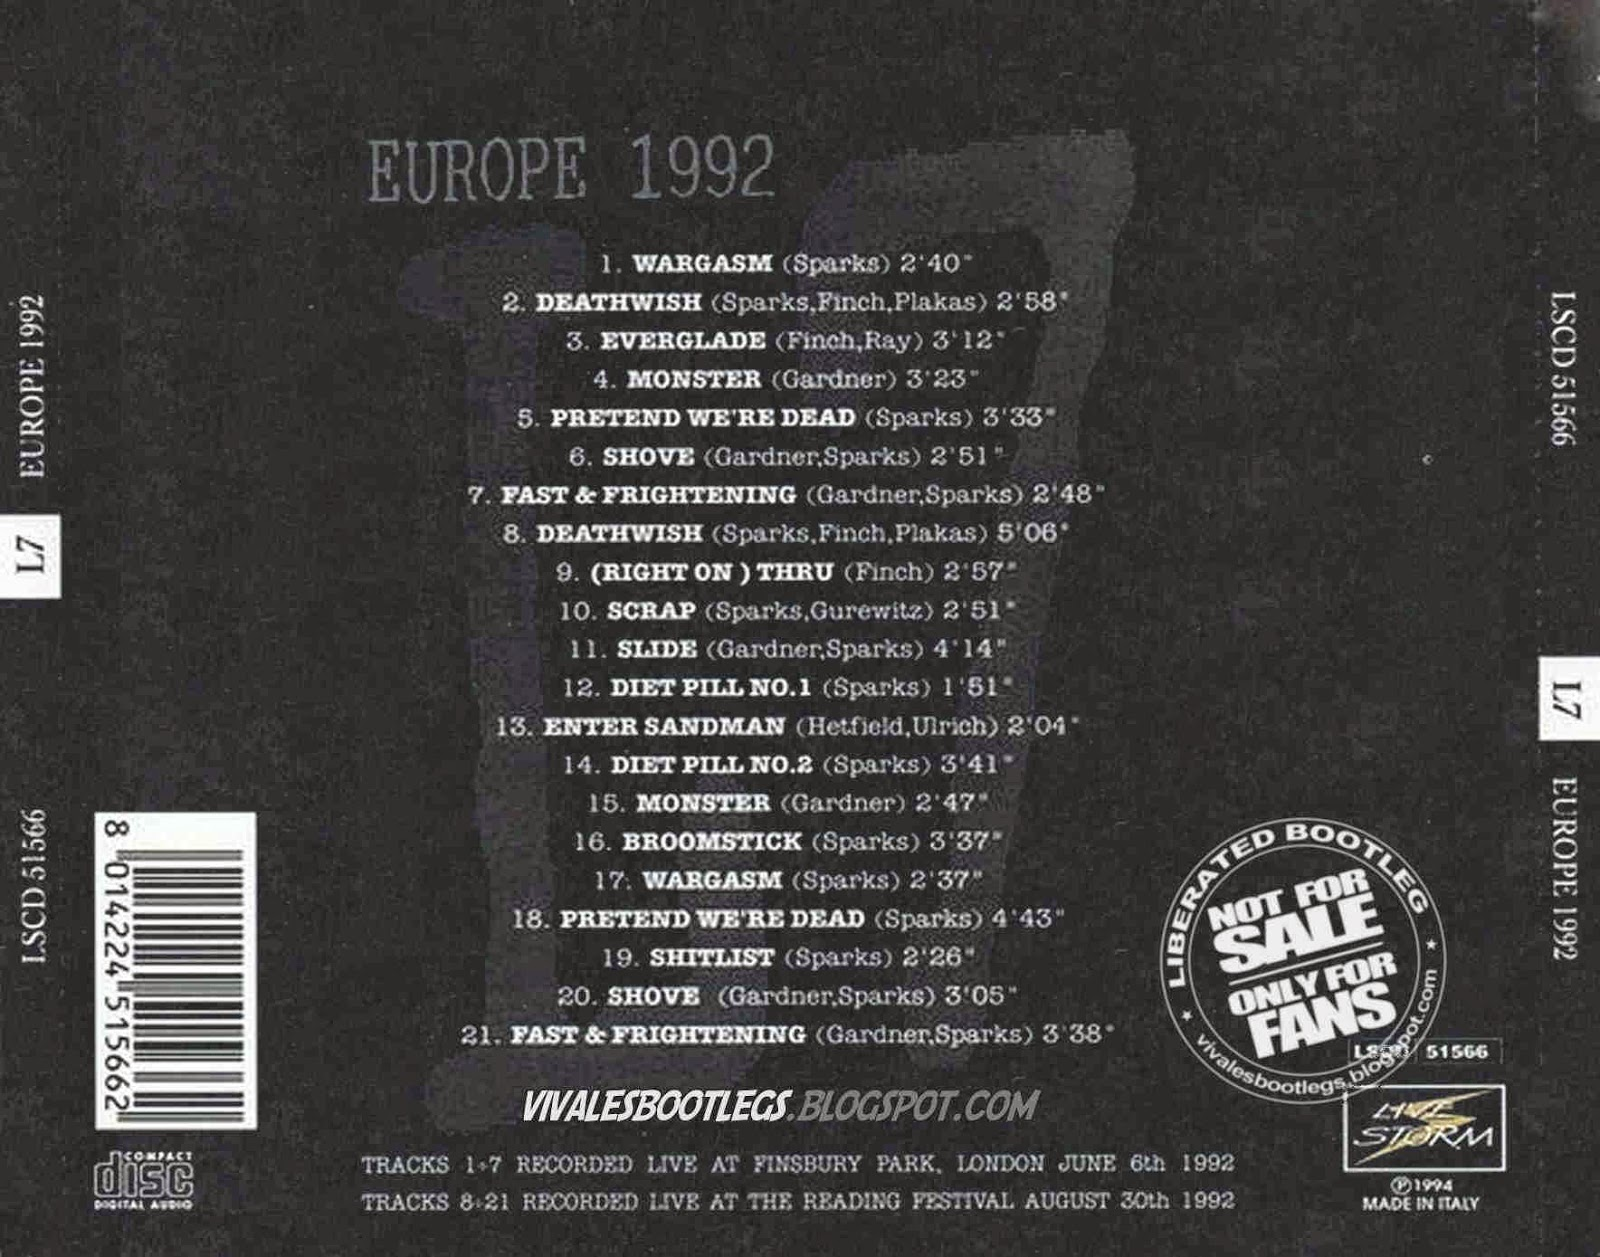 L7 Europe 1992 Back Cover